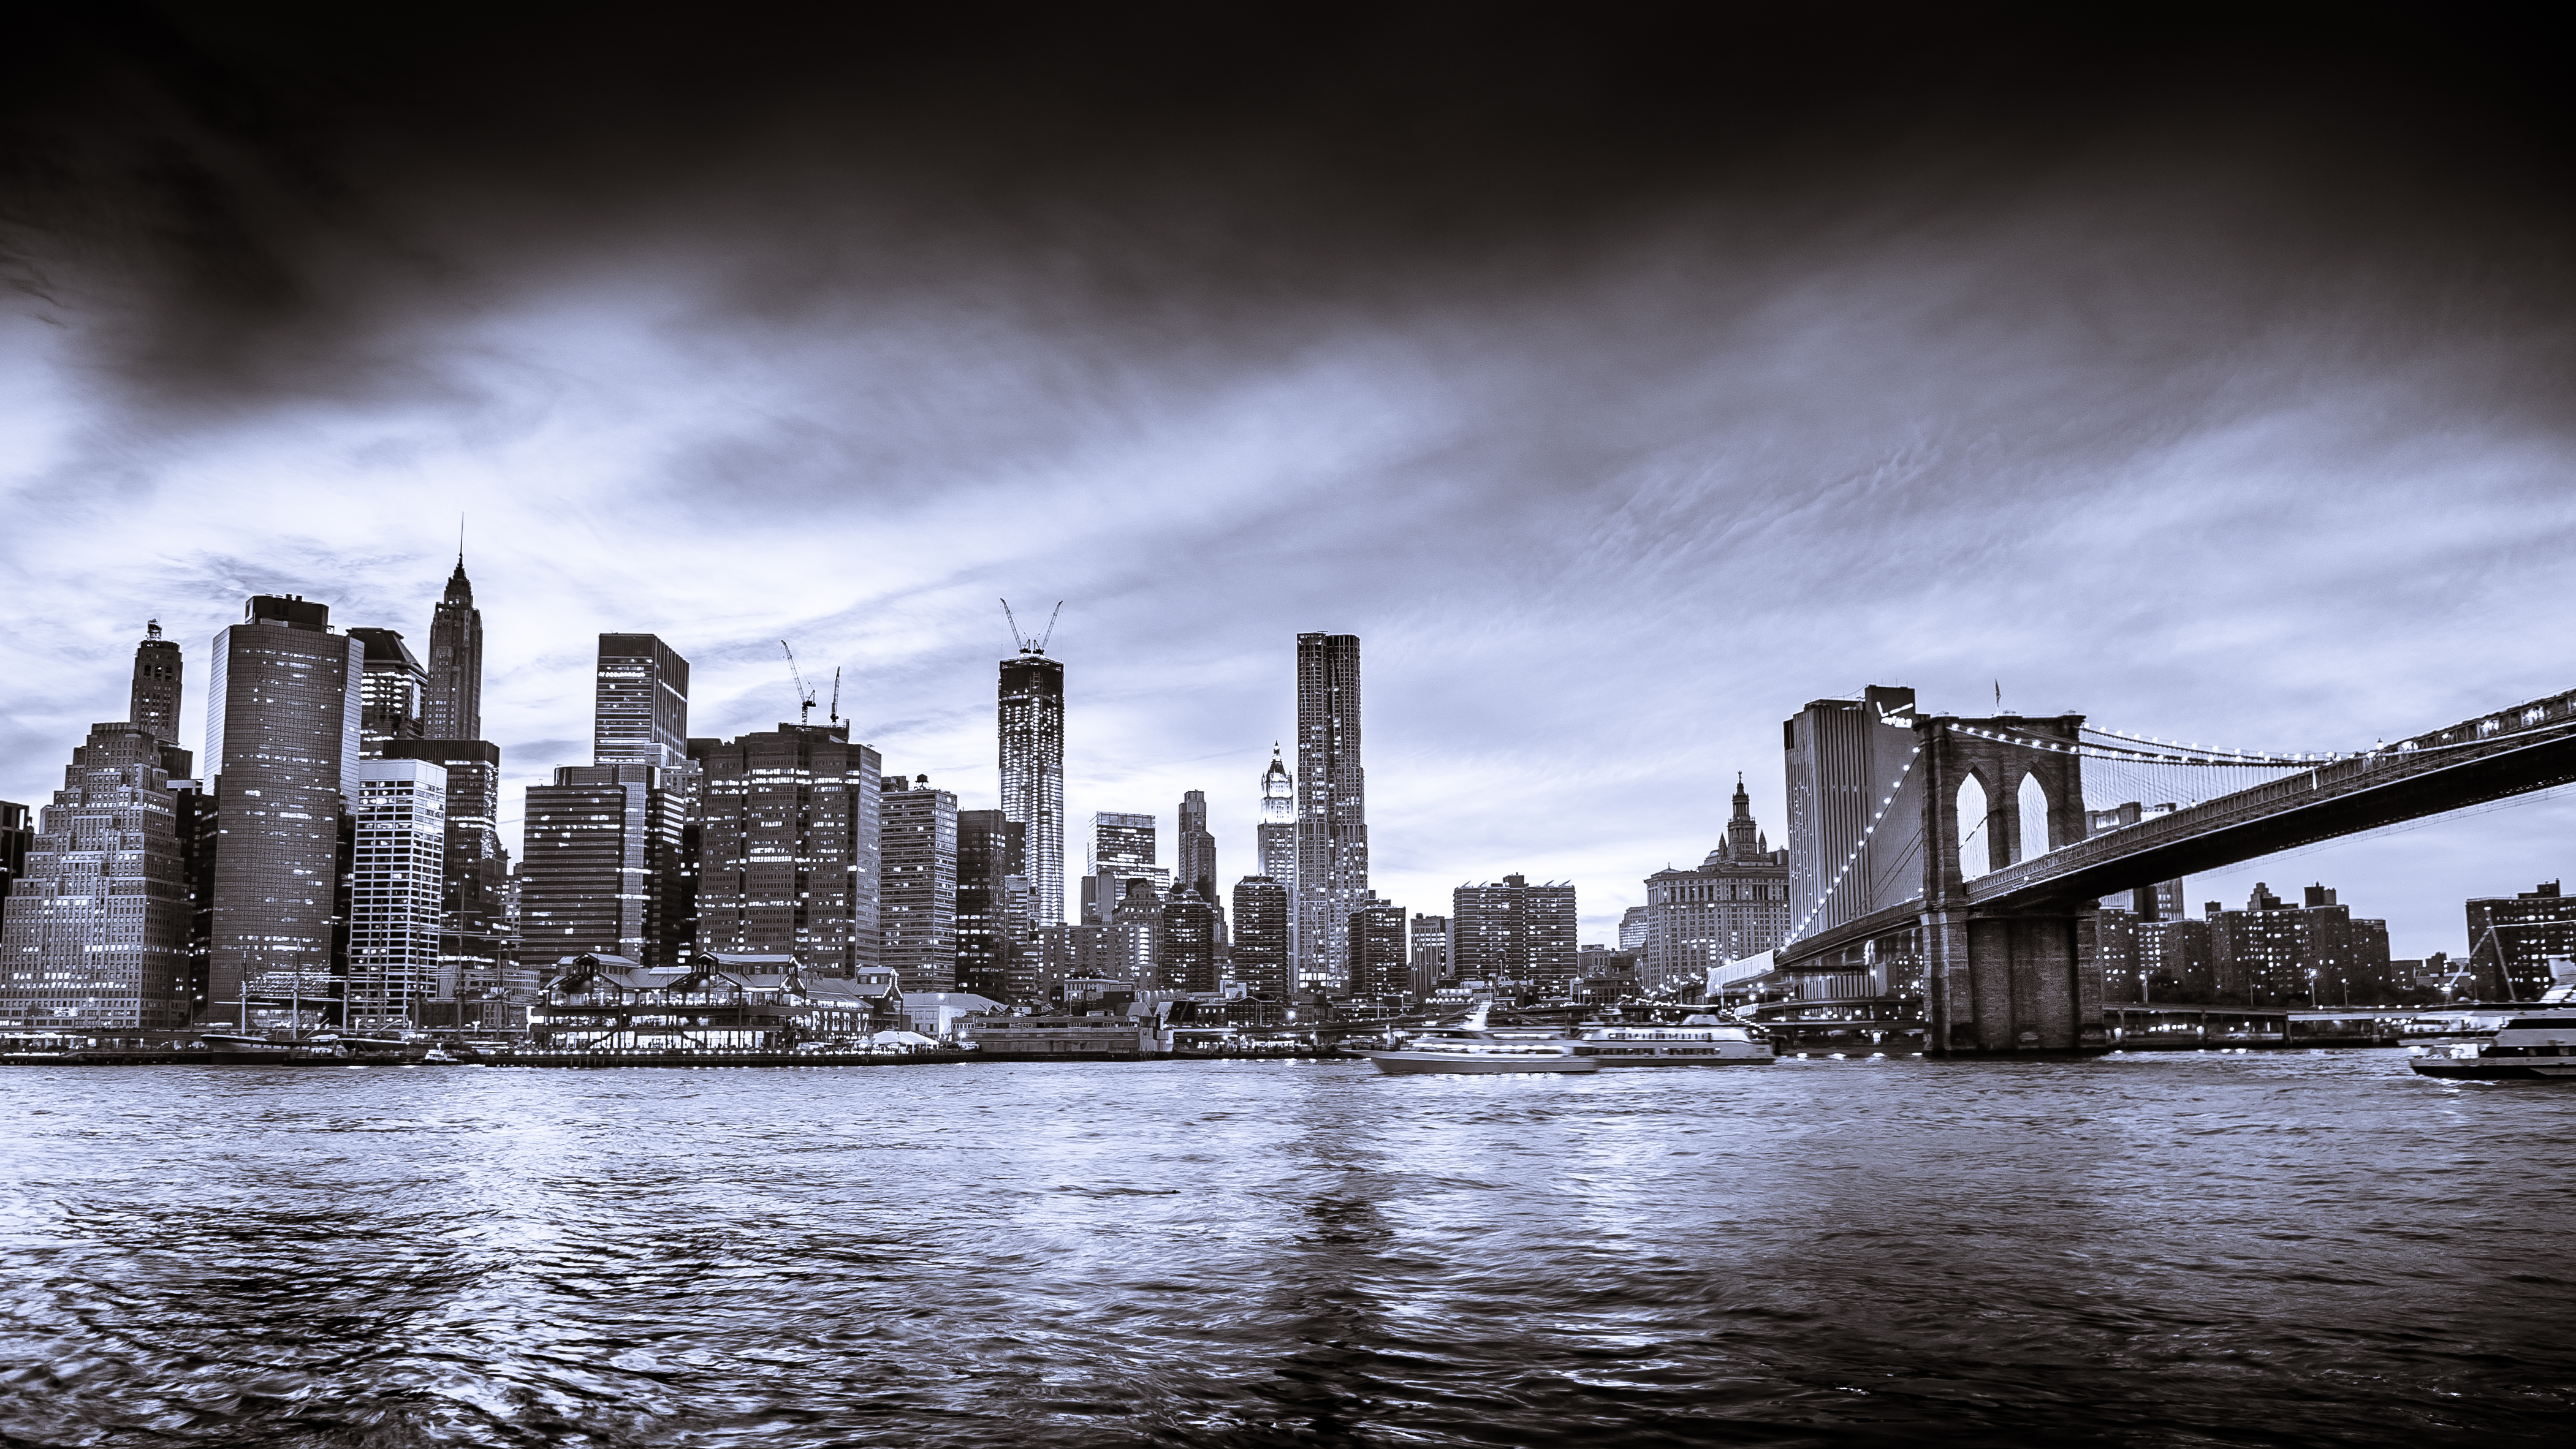 New York 4k Ultra HD Wallpaper And Background Image